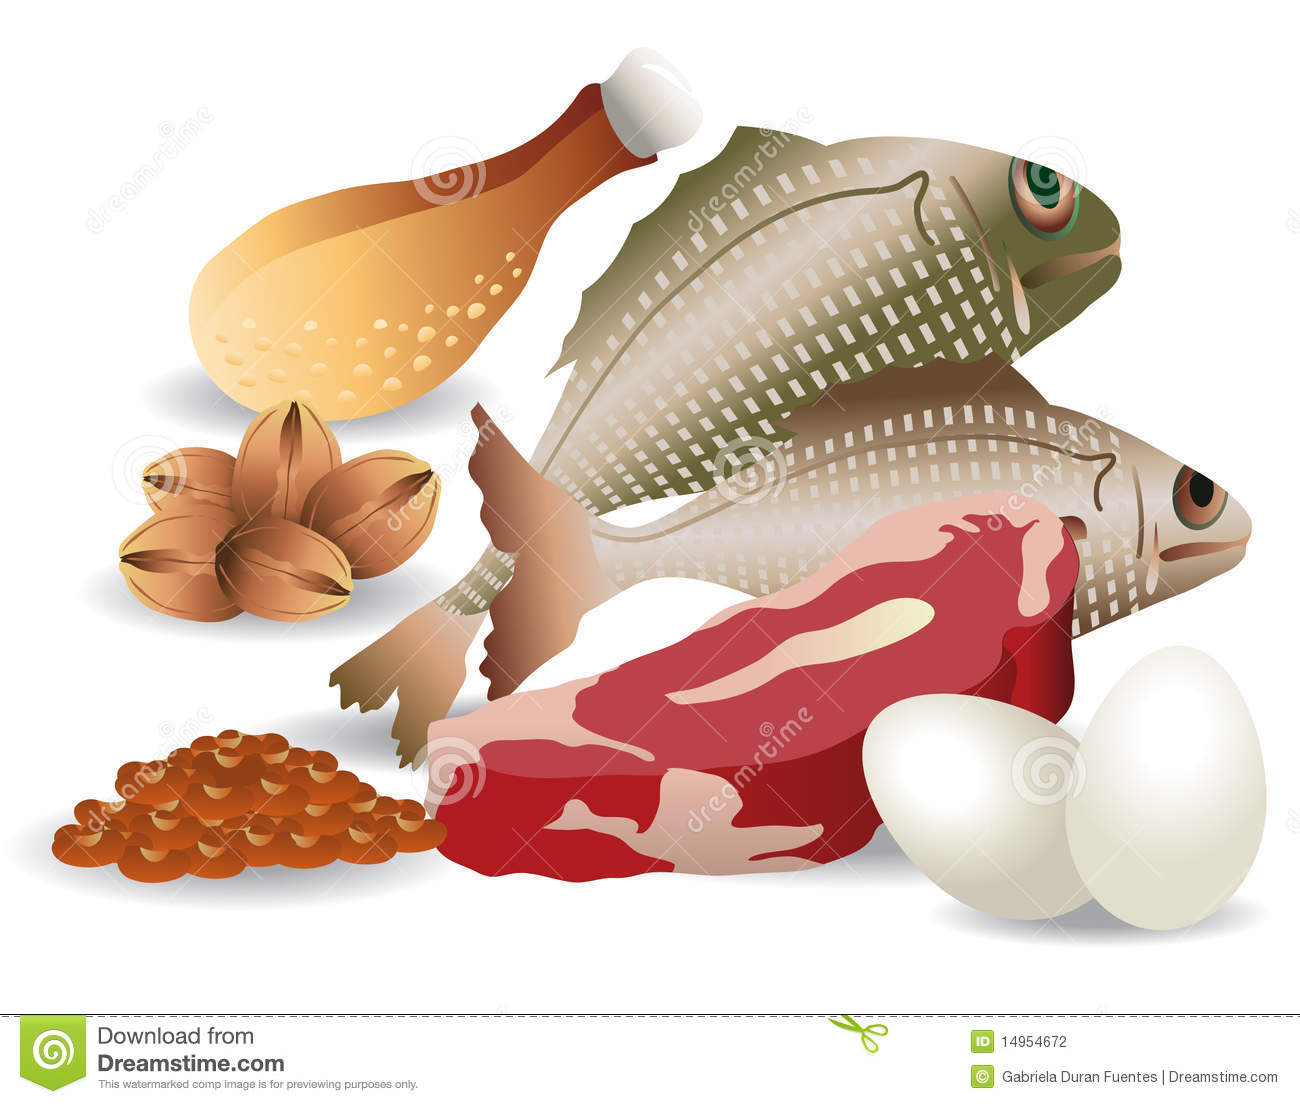 Fish Net clipart fish meat Cps Mehjwc Group Eggs Clipart